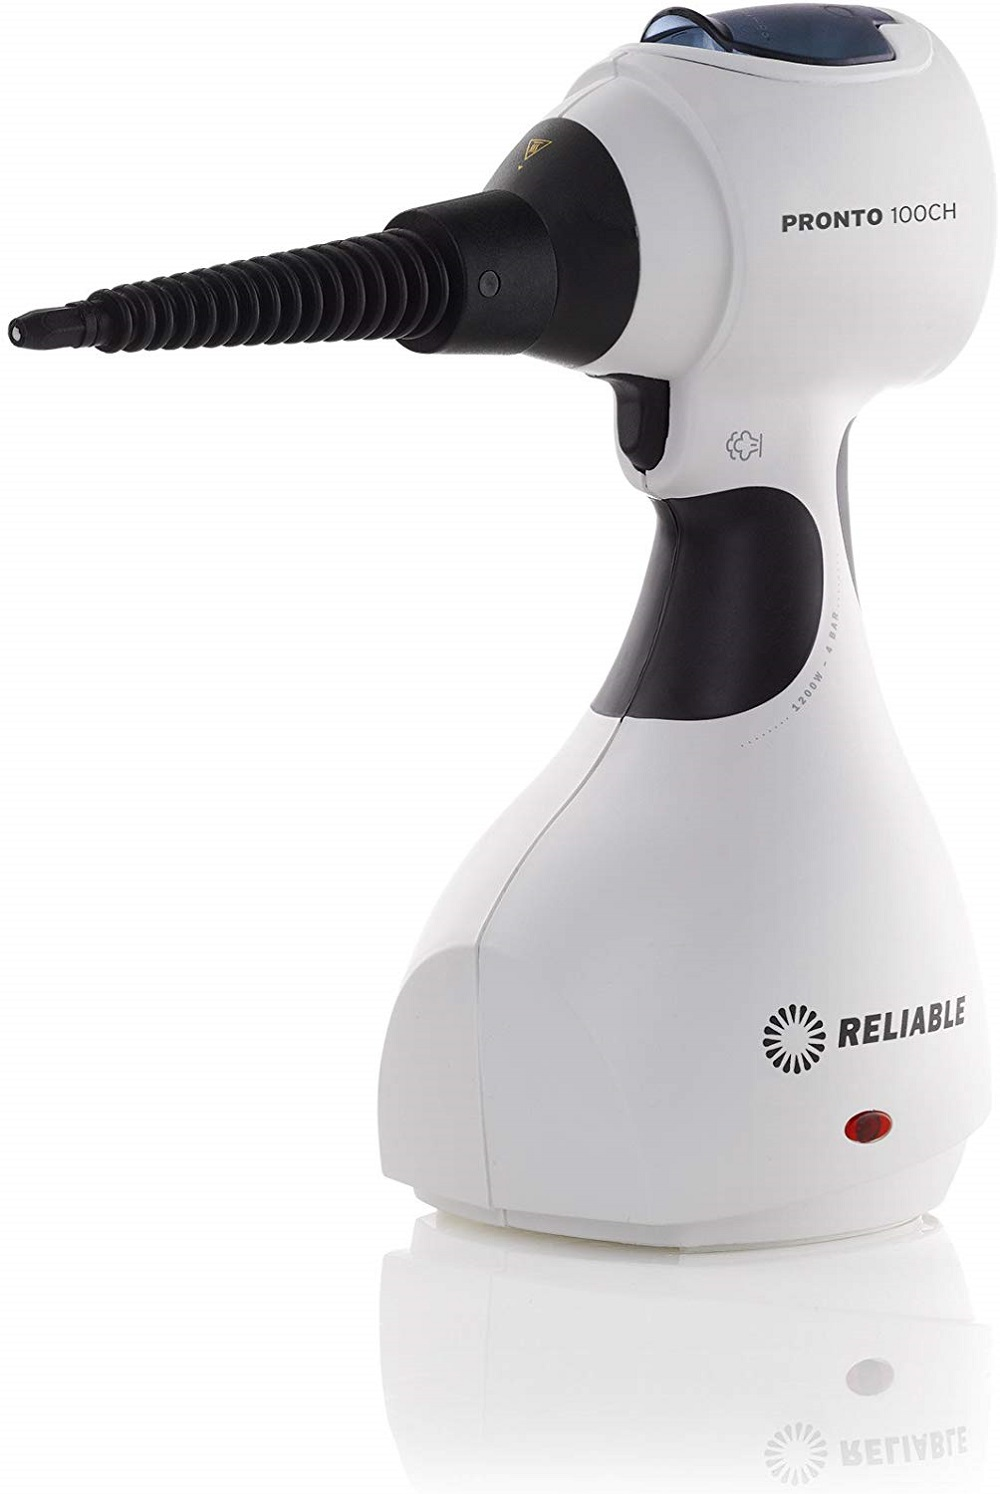 t3-49 The best upholstery steam cleaner you can buy online